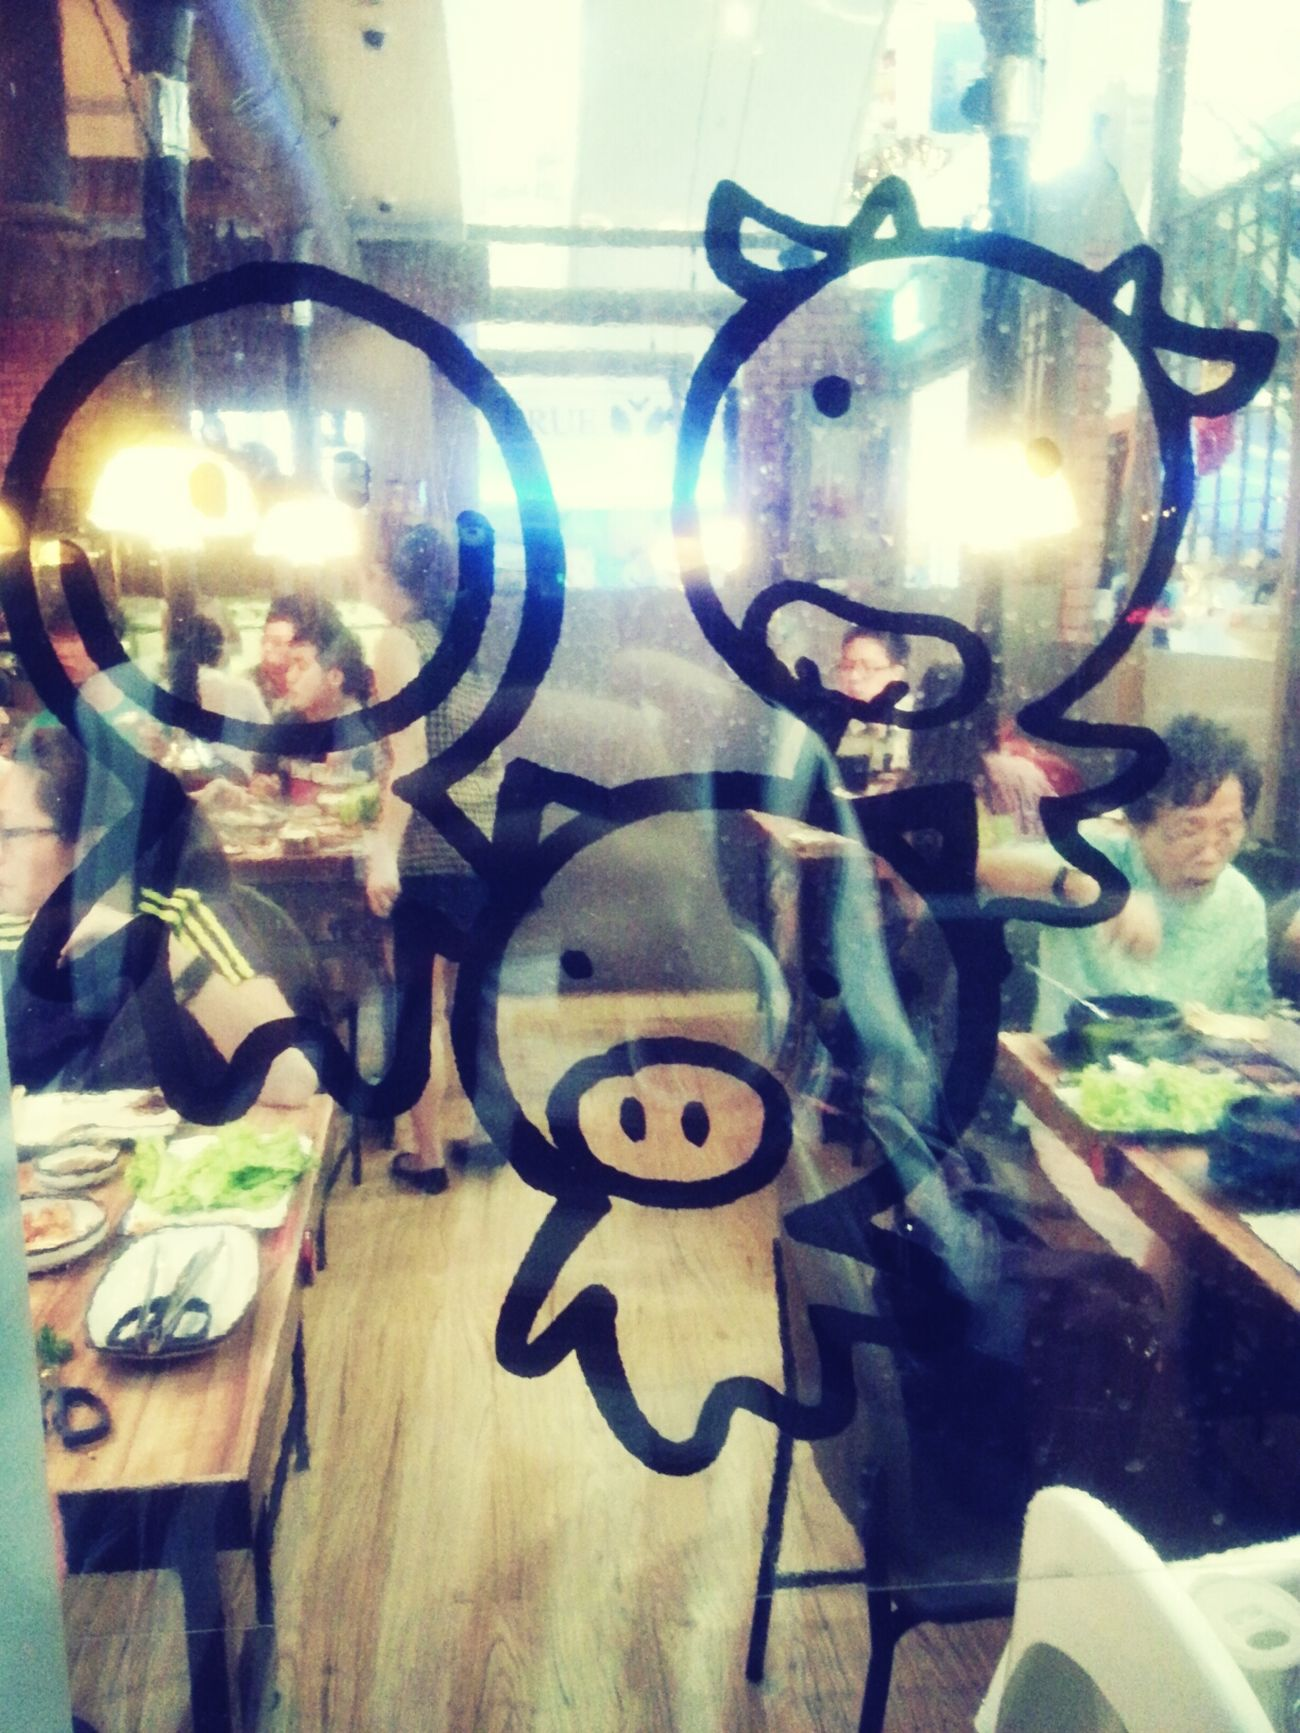 People Watching Hitchcock Stylewatching people devour their korean food through the glass. how cute are rjose stickers? they represent the three types of meat available in the restaurant